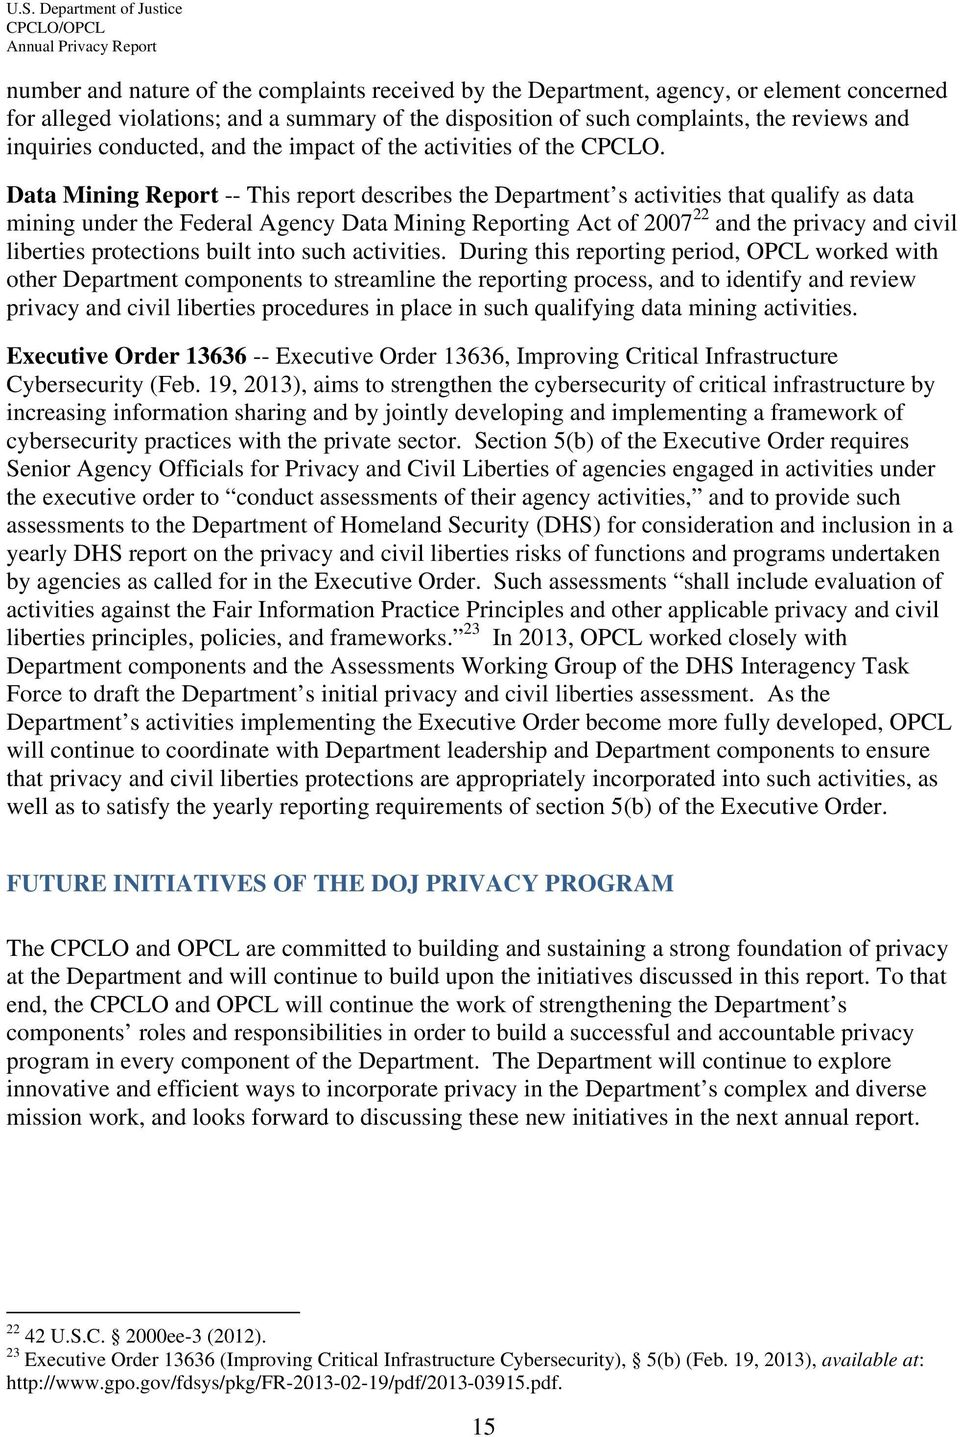 Data Mining Report -- This report describes the Department s activities that qualify as data mining under the Federal Agency Data Mining Reporting Act of 2007 22 and the privacy and civil liberties